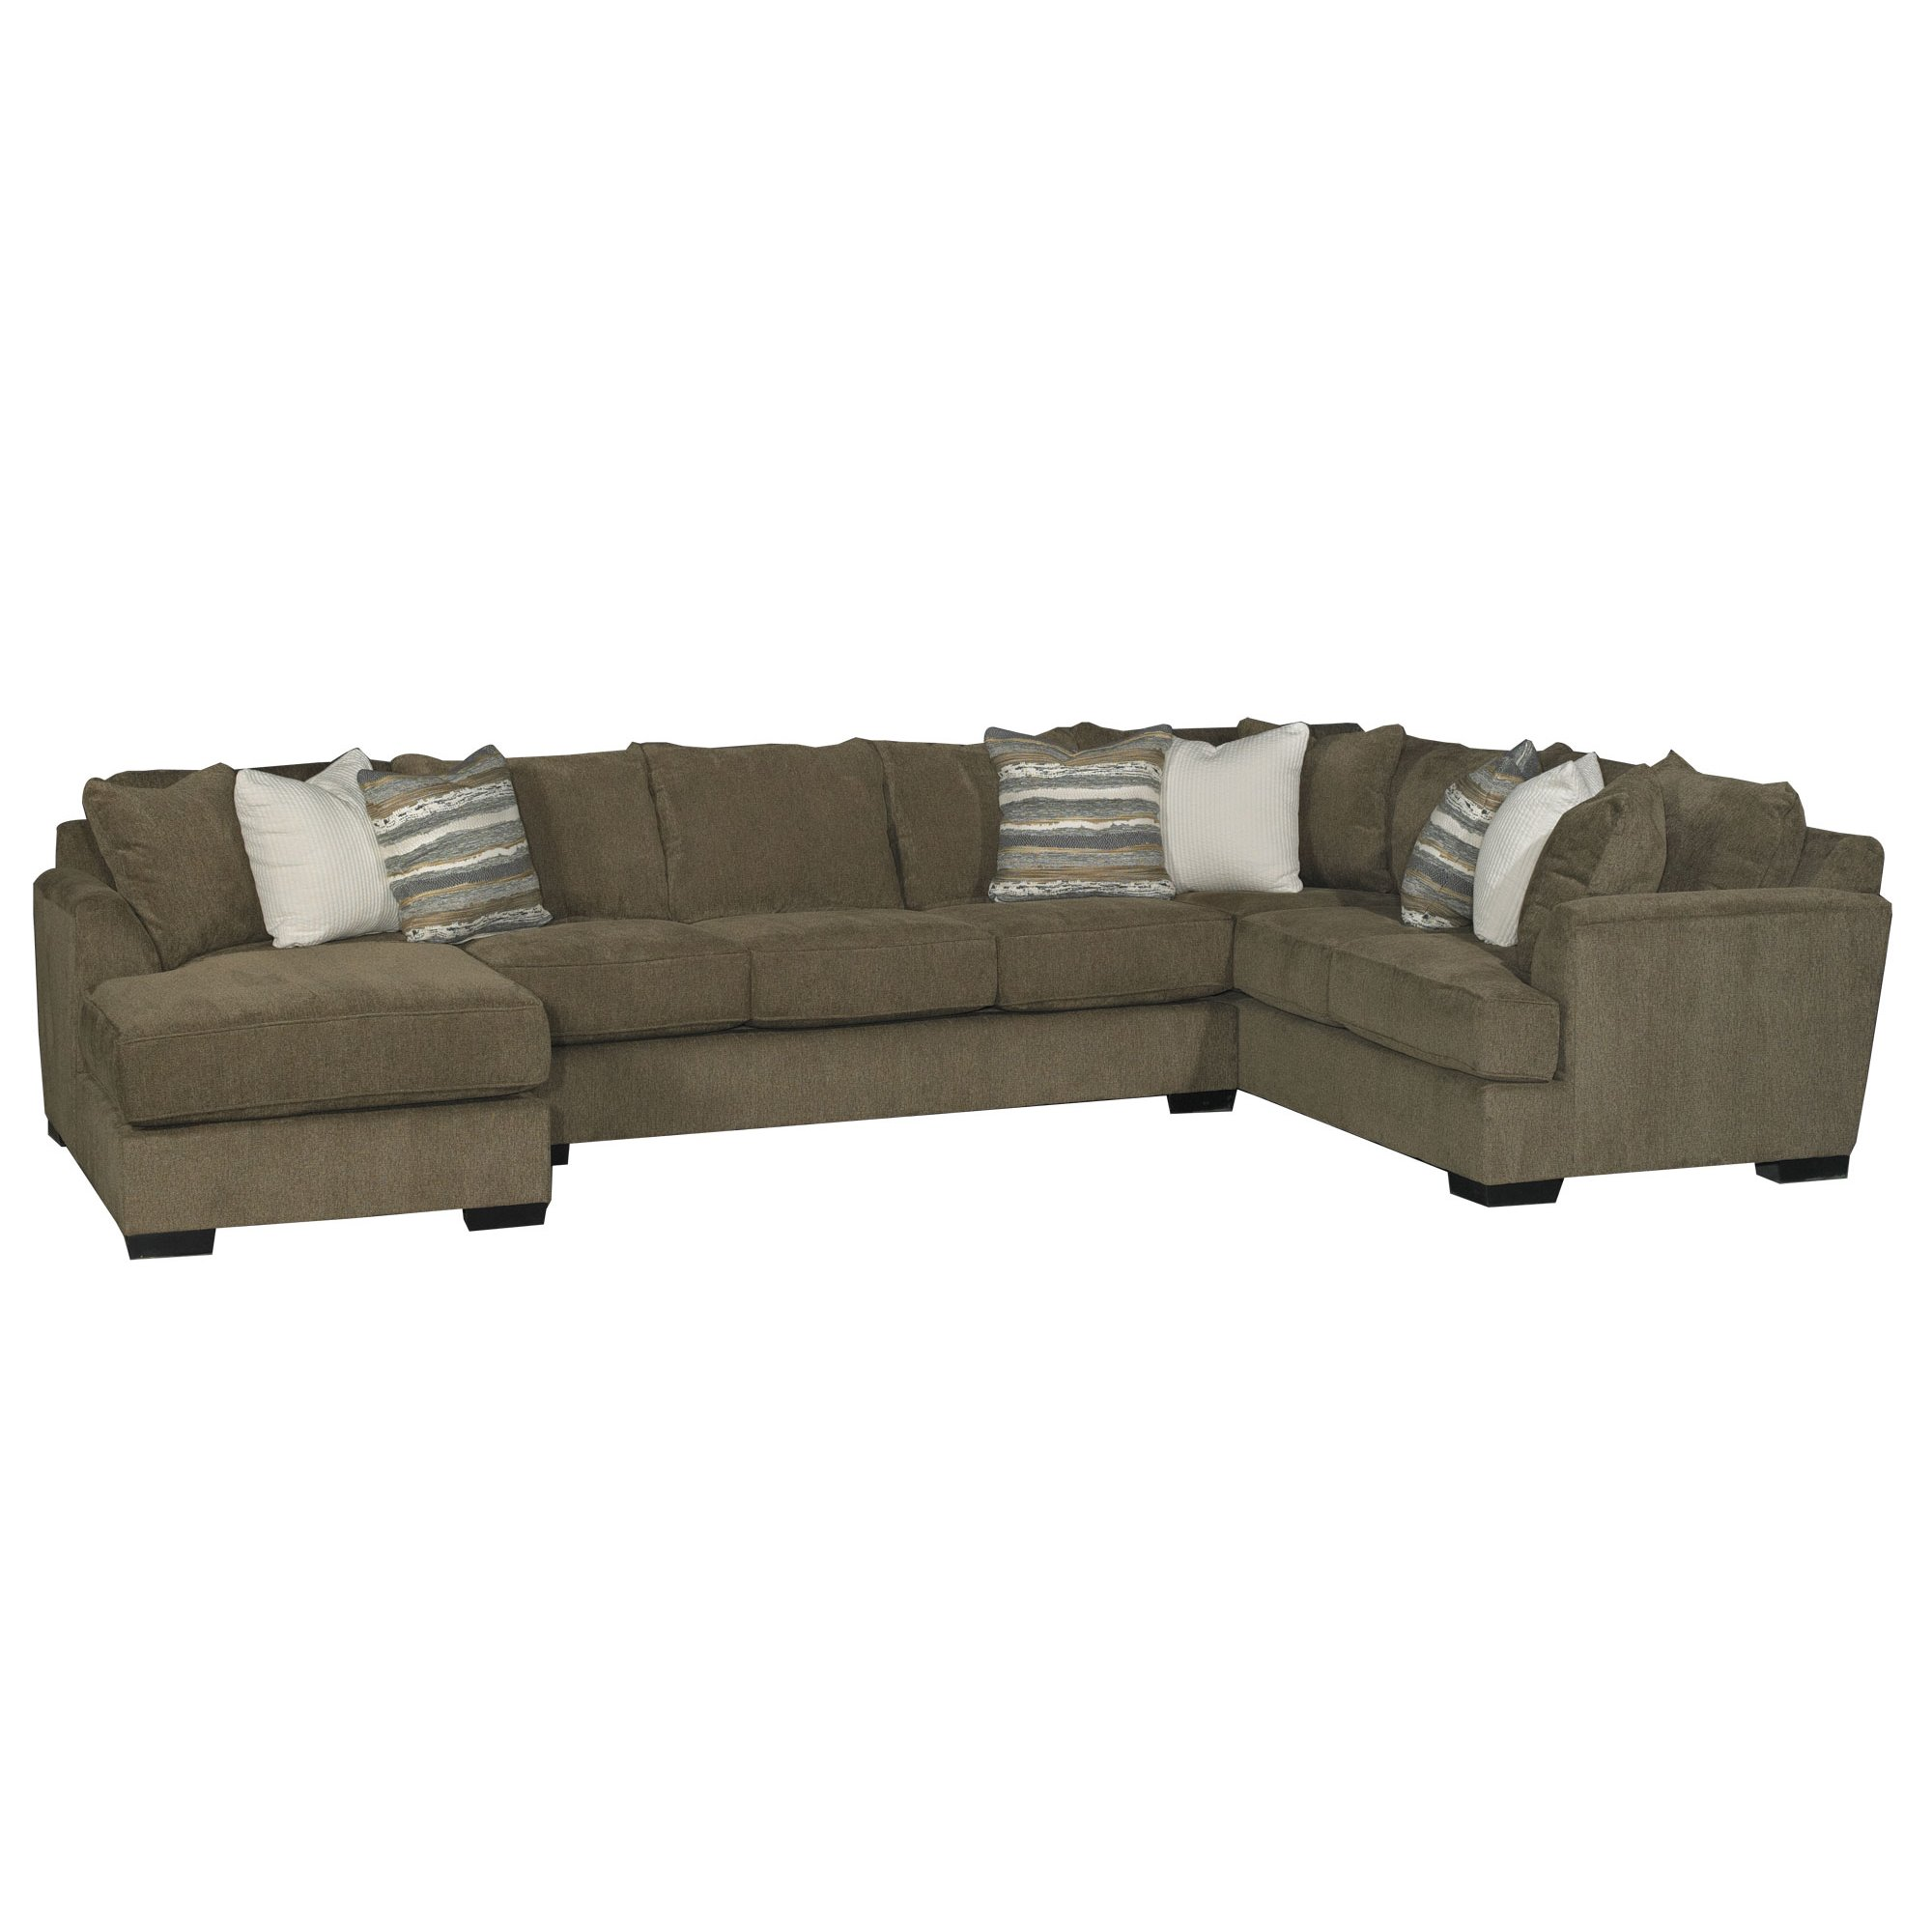 of willey sofas golden best piece noah yellow contemporary rcwilley rc viewer sectional image